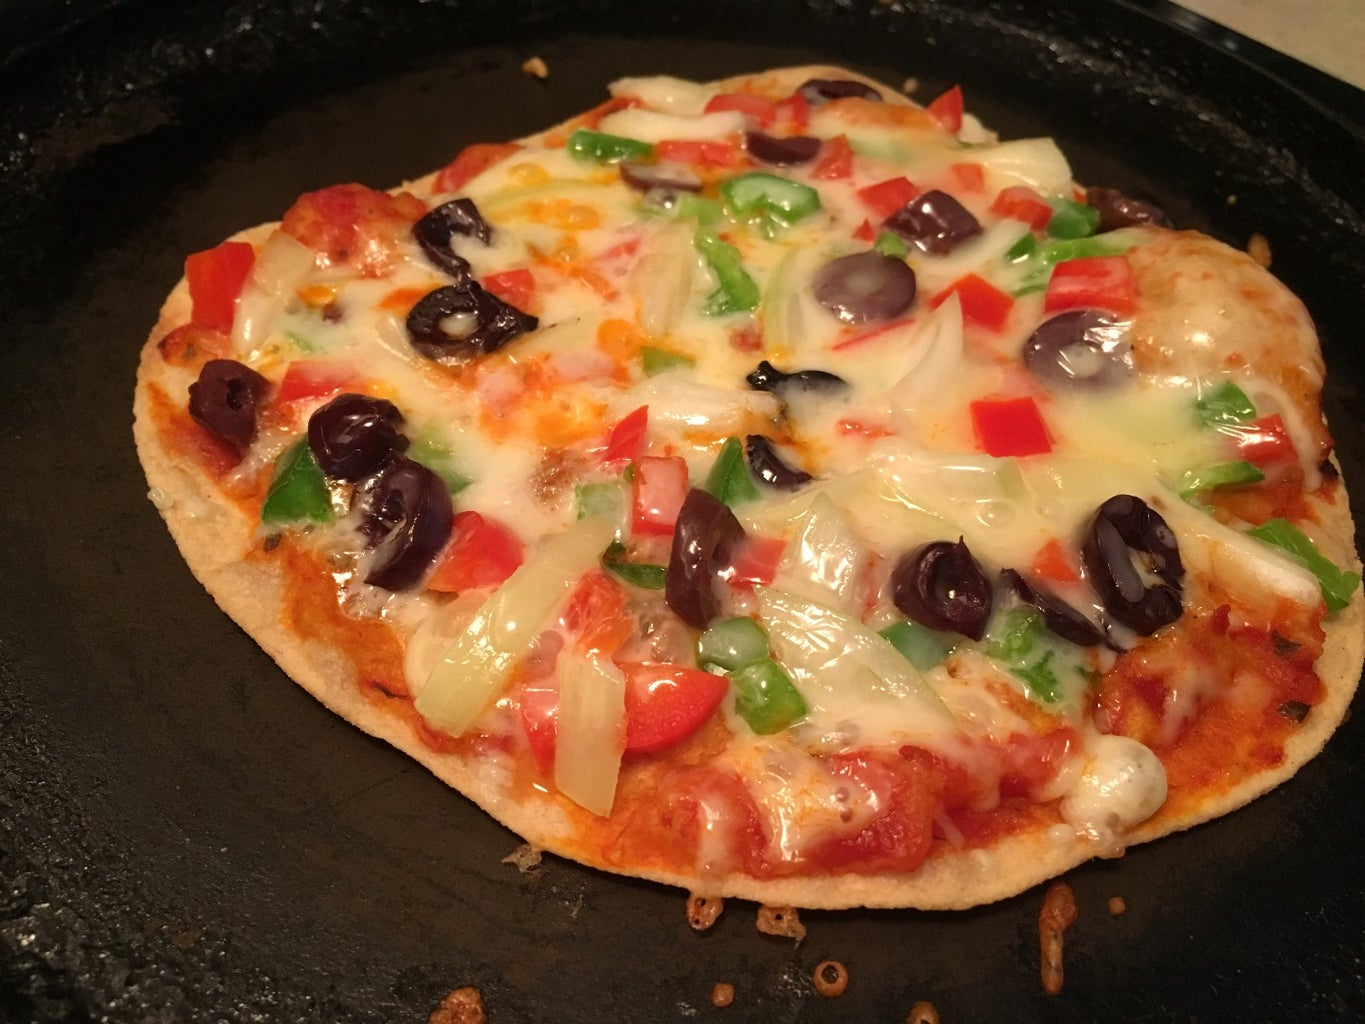 Making the Pizza